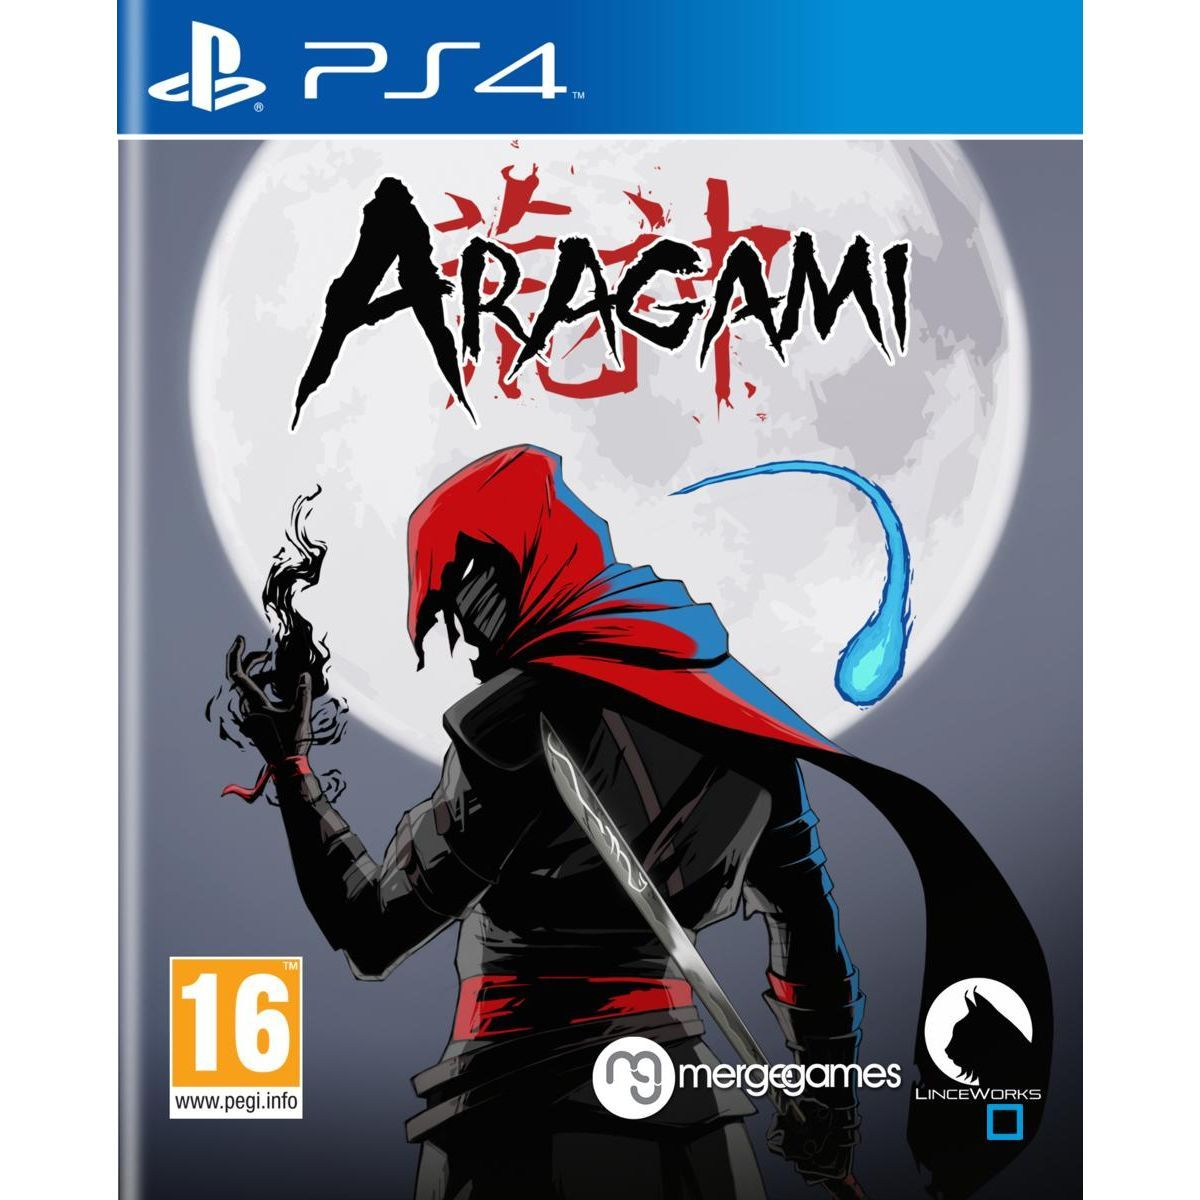 Aragami Ps4 Taille Taille Unique Ps4 Games Playstation Games